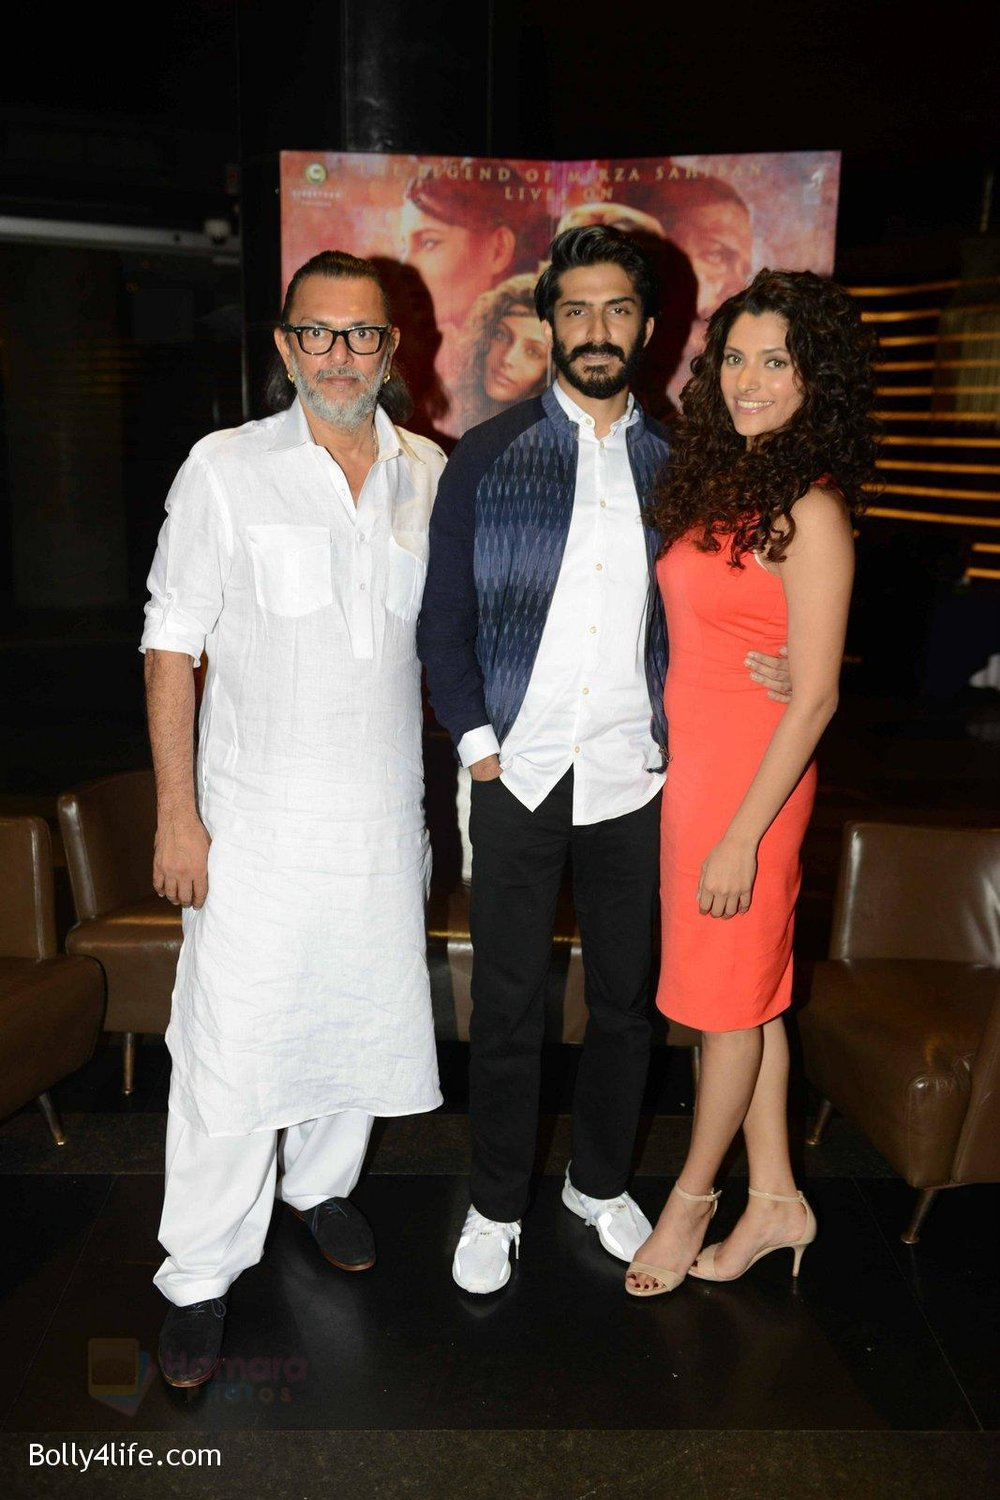 Harshvardhan-Kapoor-Saiyami-Kher-at-Mirzya-press-meet-in-Delhi-on-3rd-Oct-2016-82.jpg